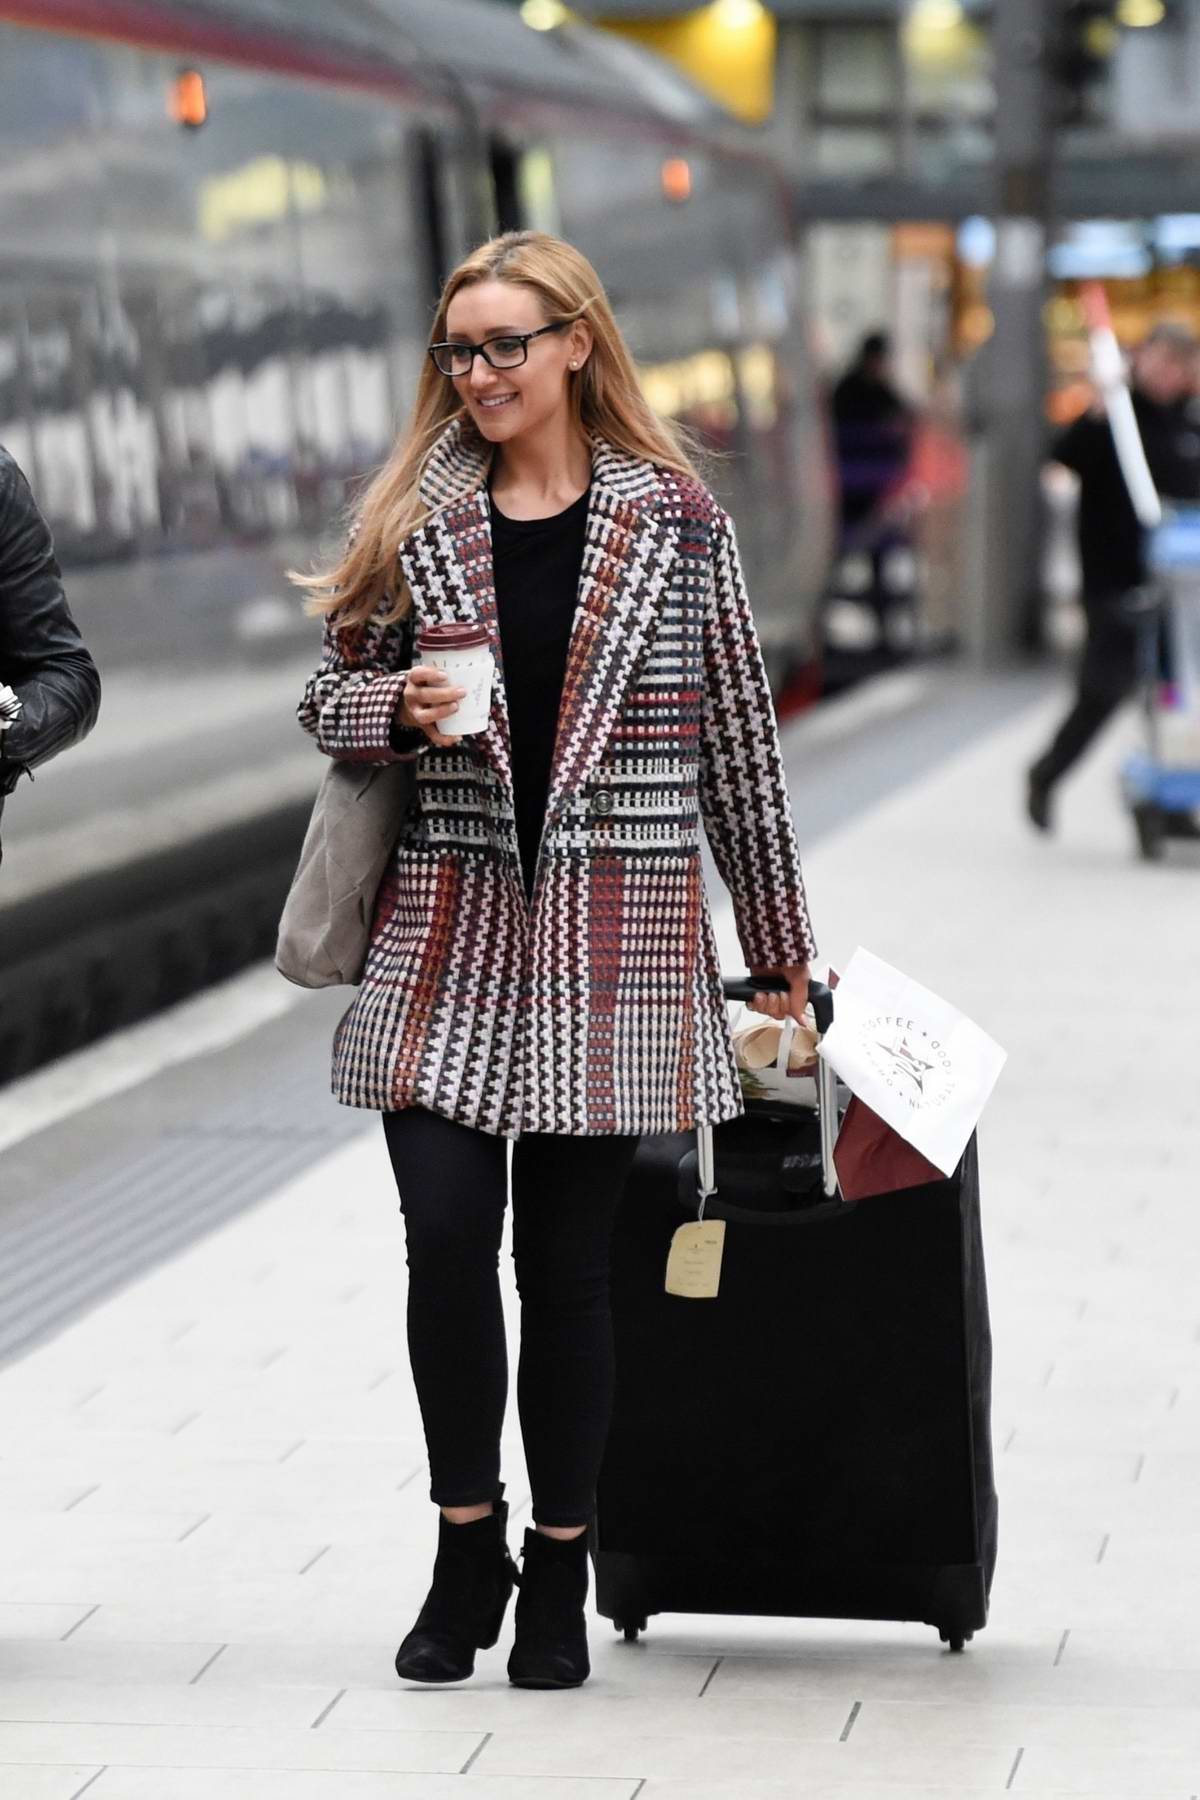 Catherine Tyldesley spotted at the Manchester Piccadilly Station while catching a train to London